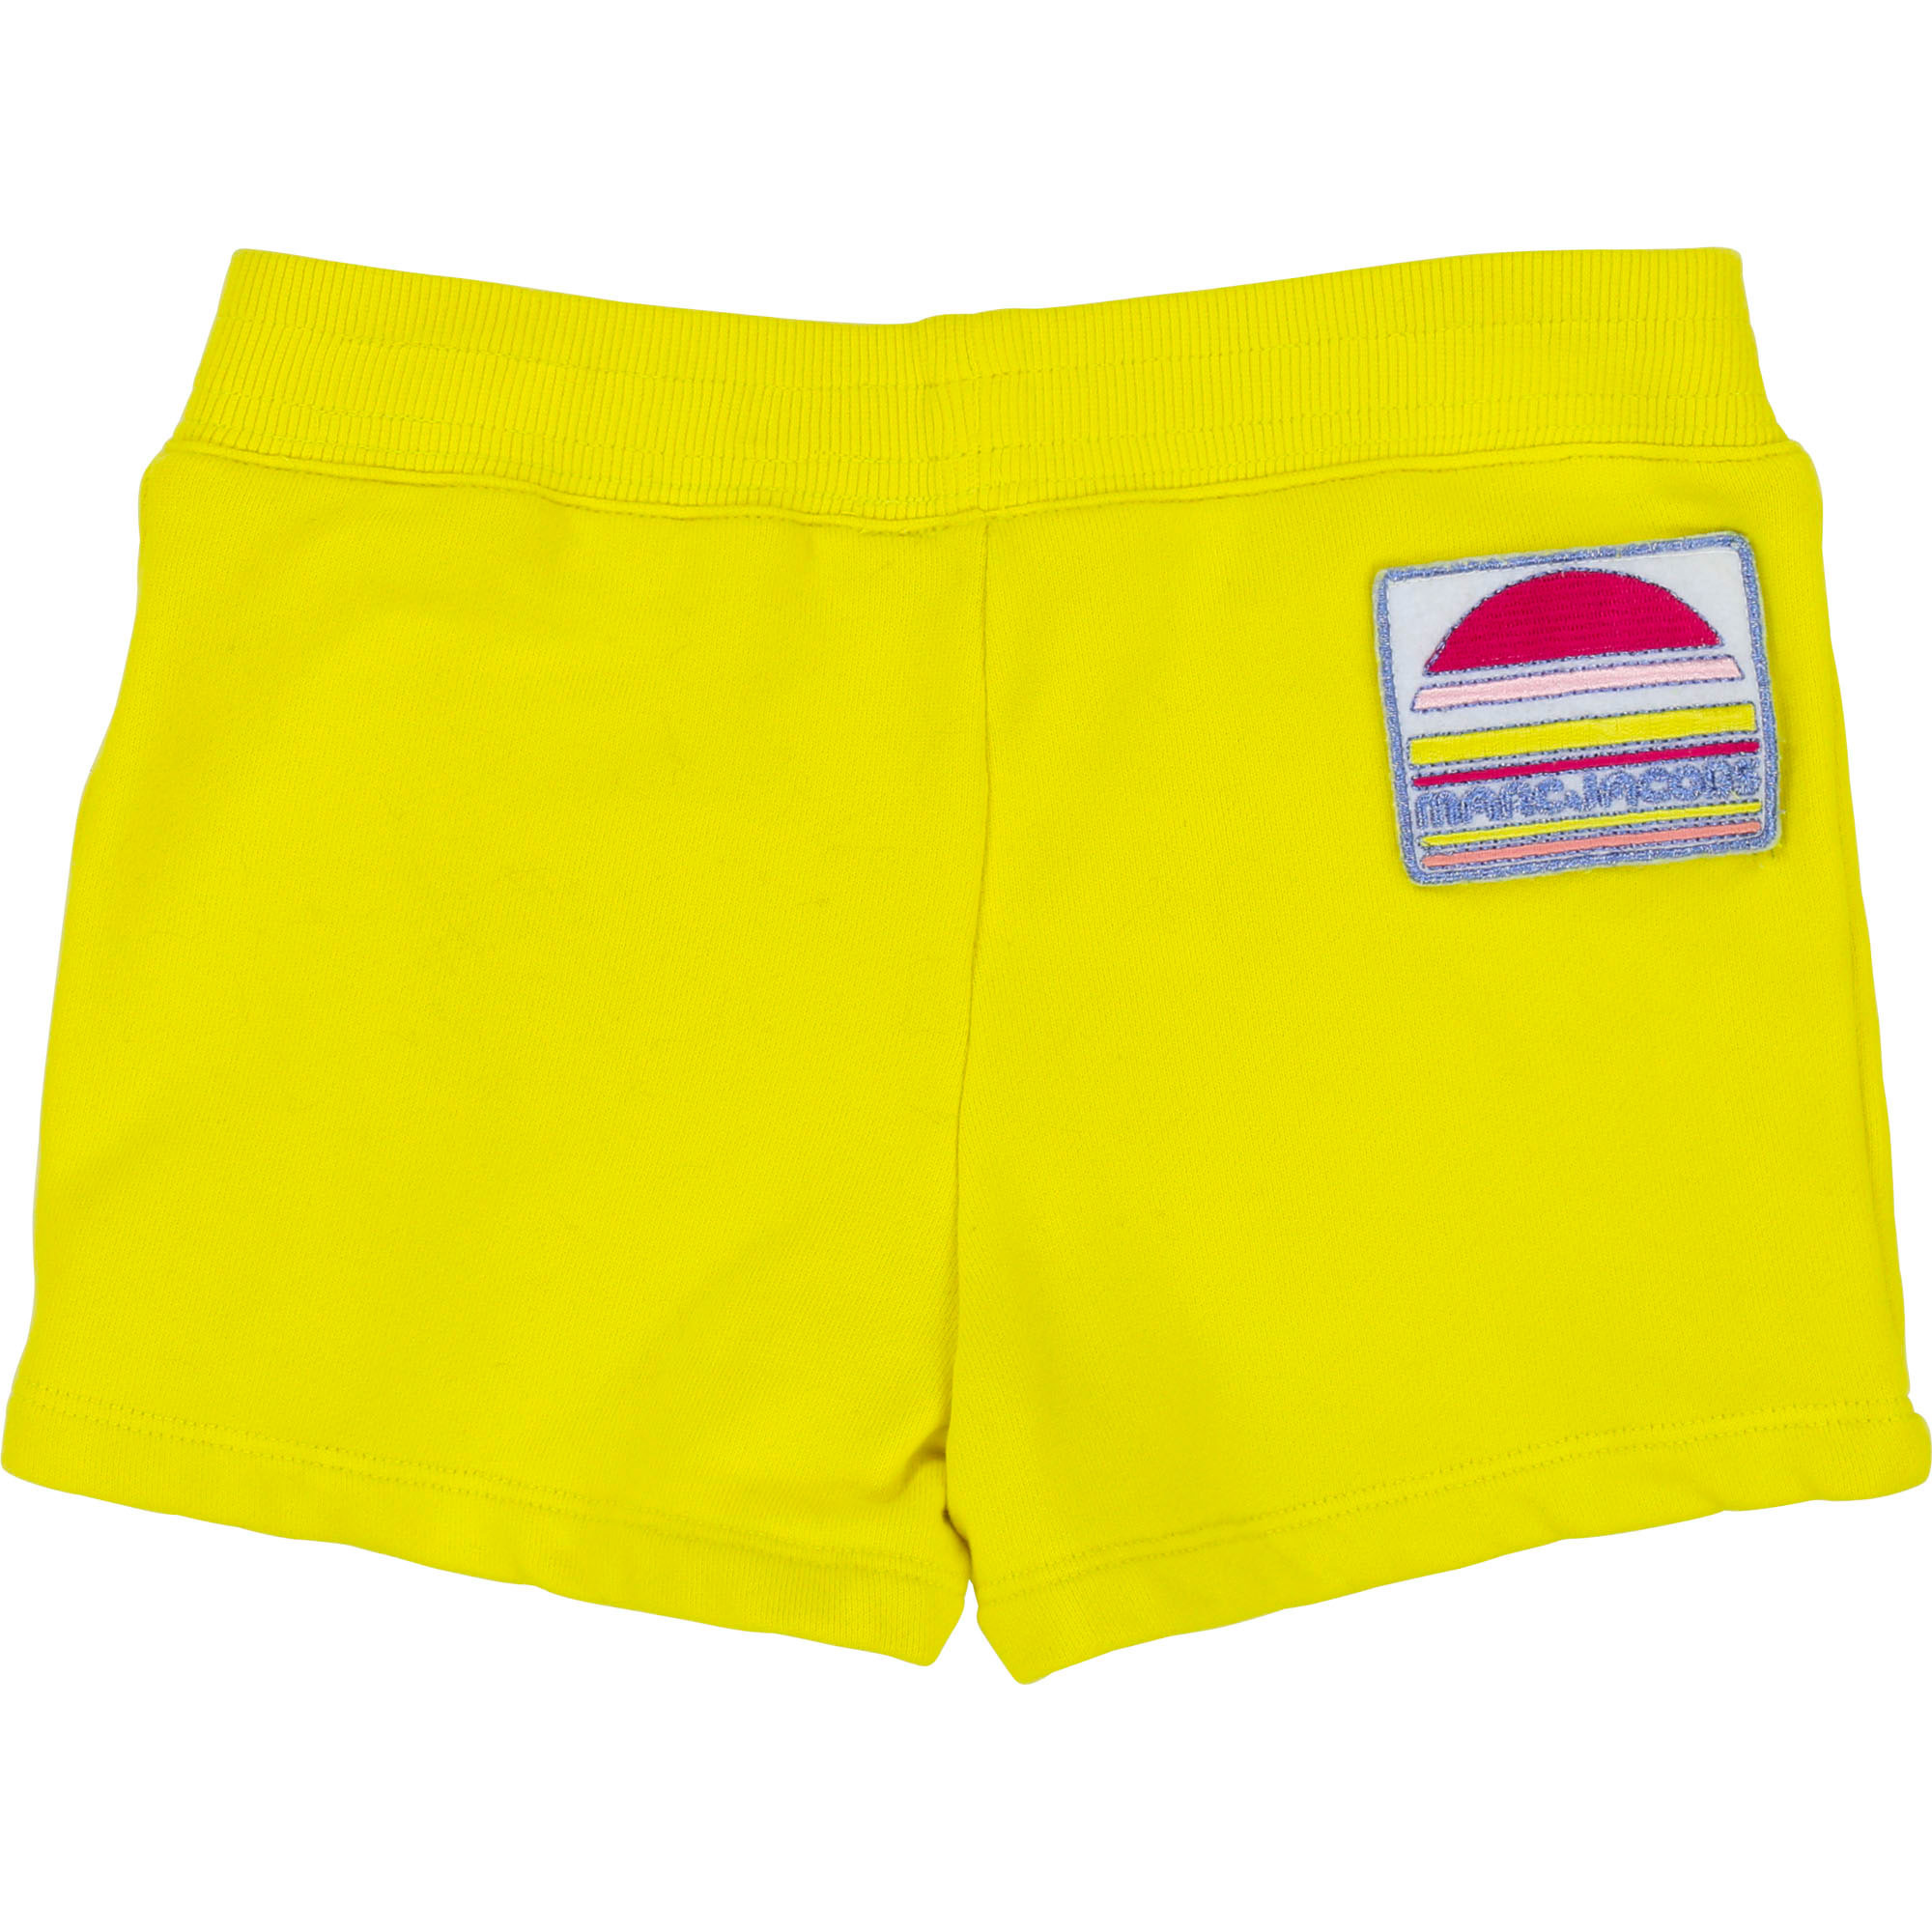 Short de jogging en molleton THE MARC JACOBS pour FILLE